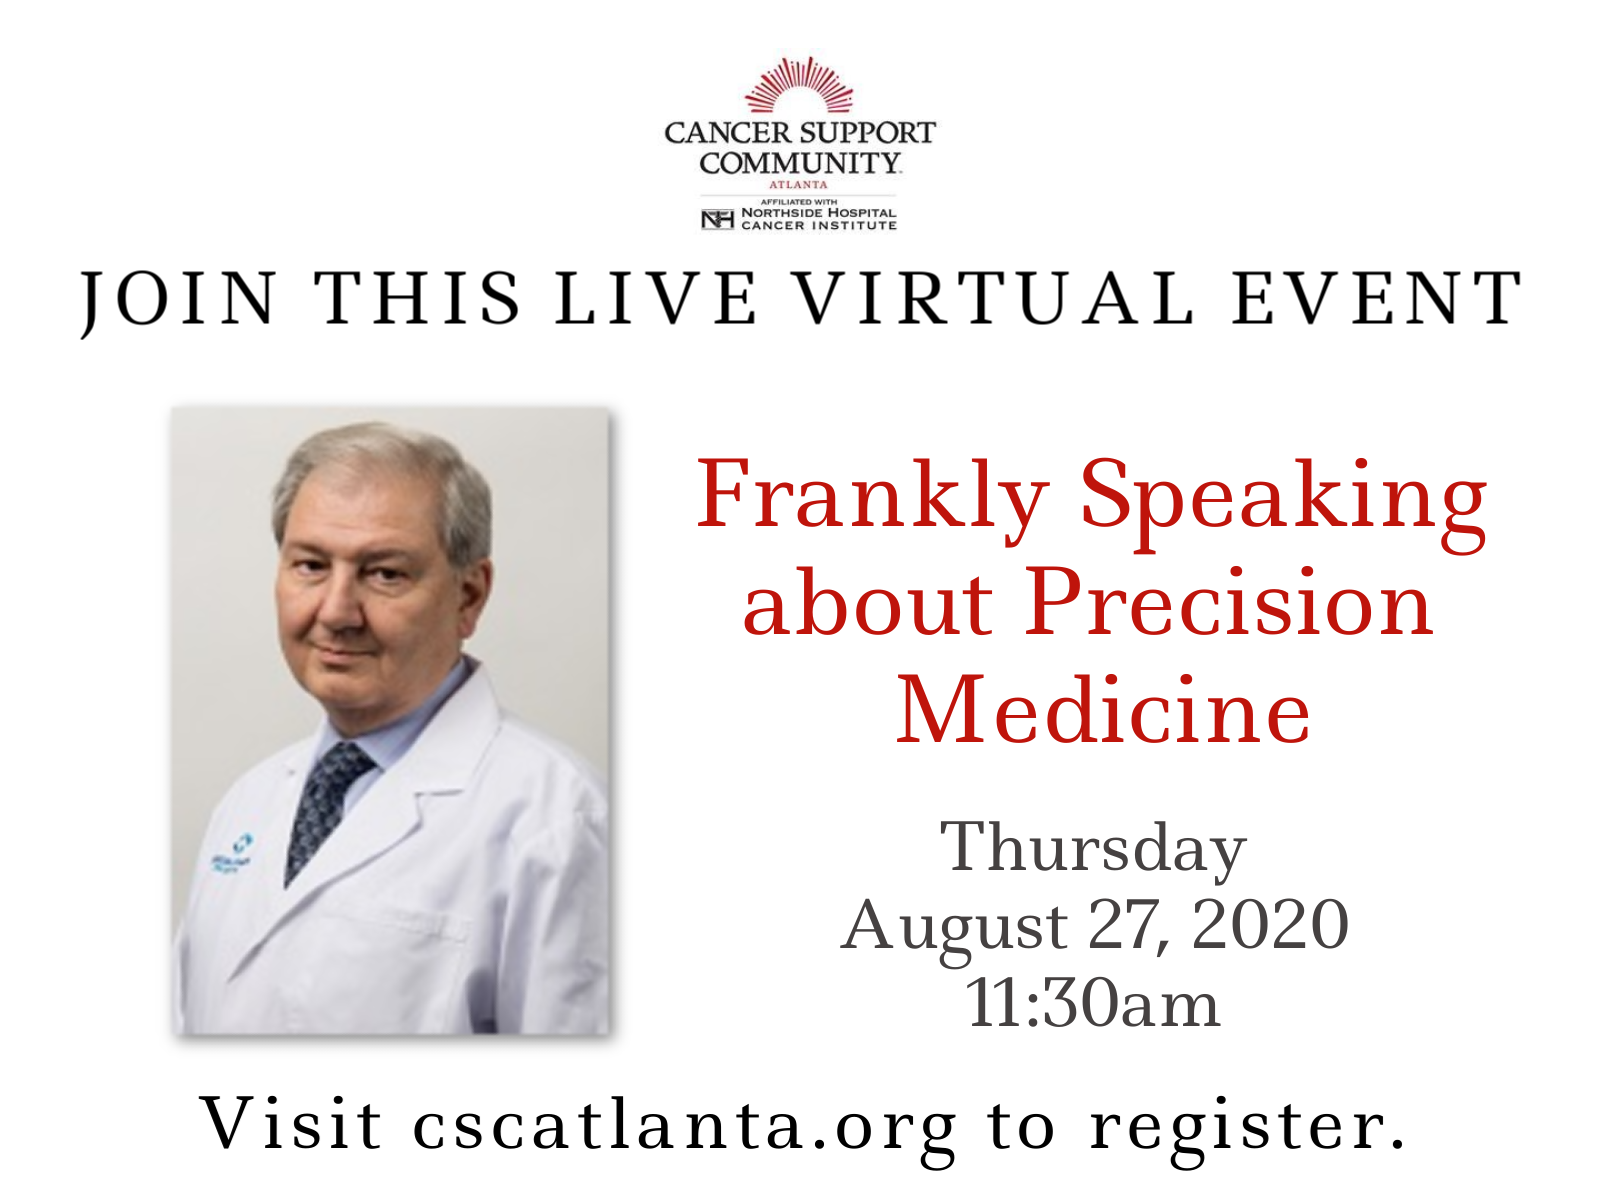 Live Virtual Event - Frankly Speaking about Precision Medicine